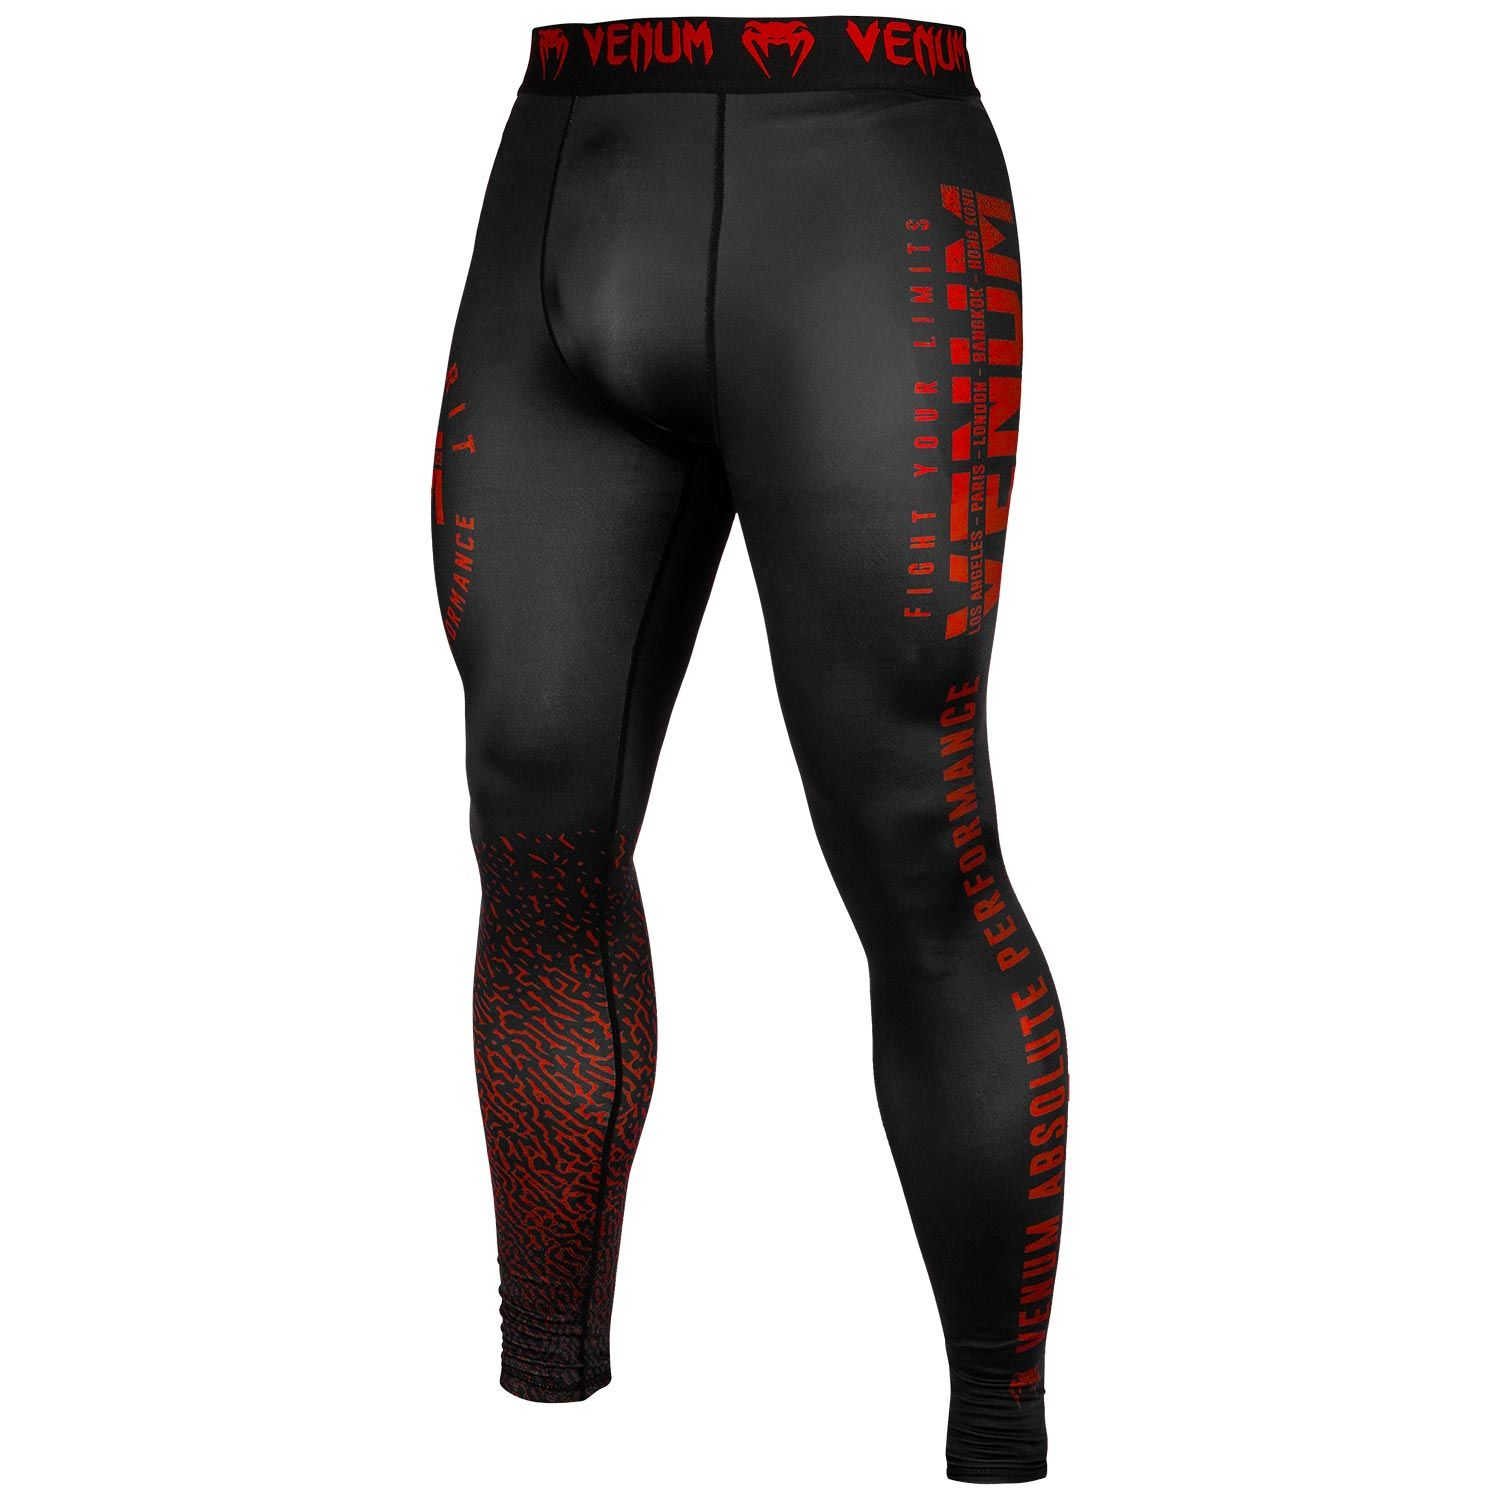 Venum Signature Compression Spats Black//Red